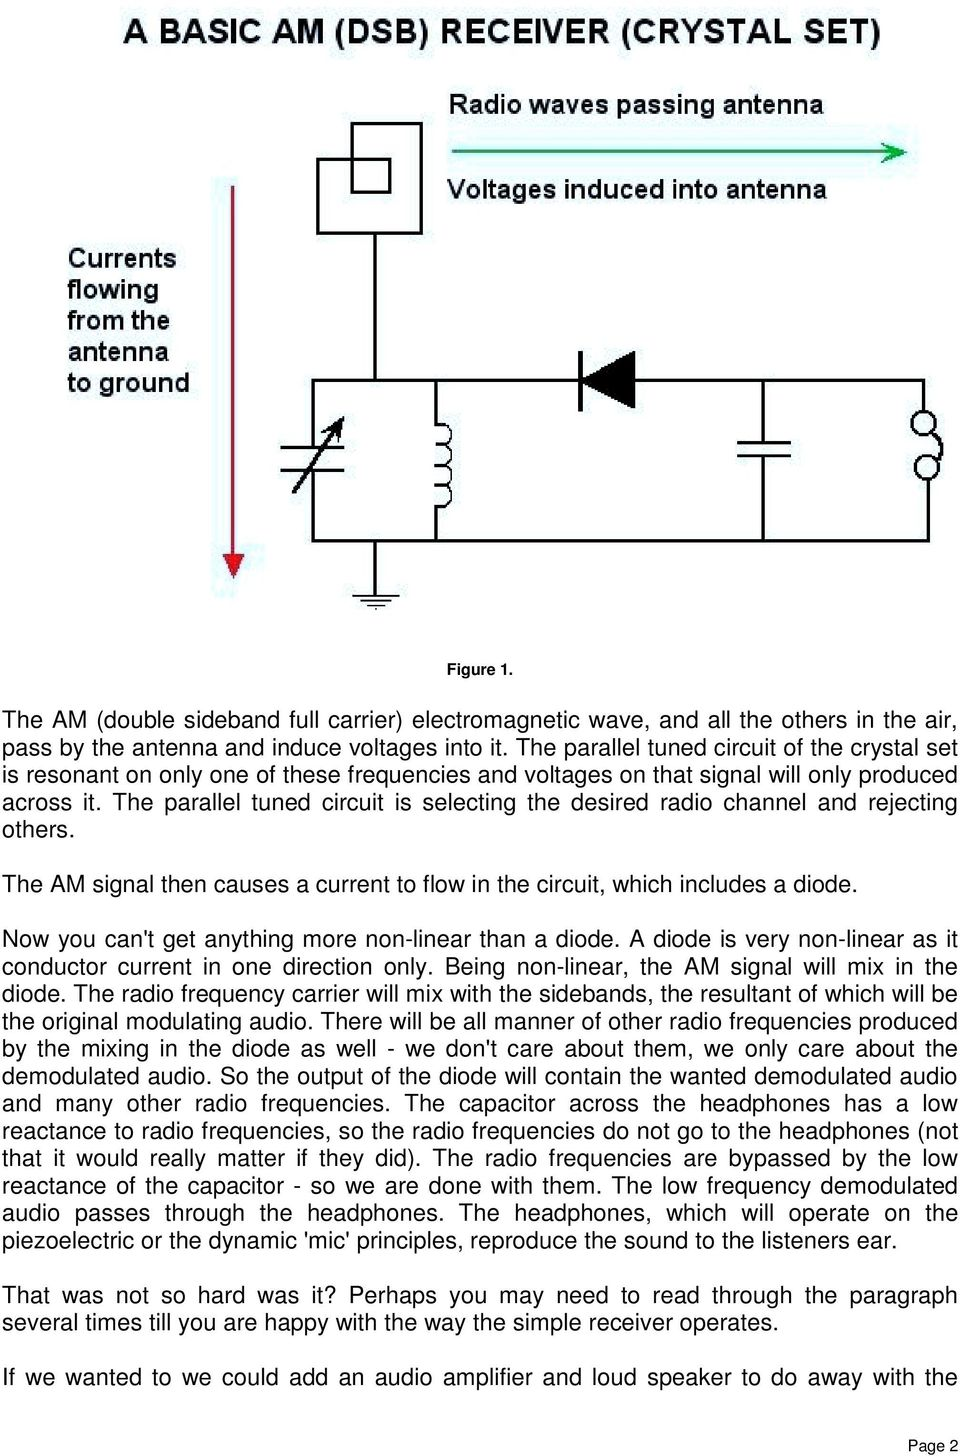 Am Transmitters Receivers Pdf Voice Transmitter Via Medium Wave Band The Parallel Tuned Circuit Is Selecting Desired Radio Channel And Rejecting Others